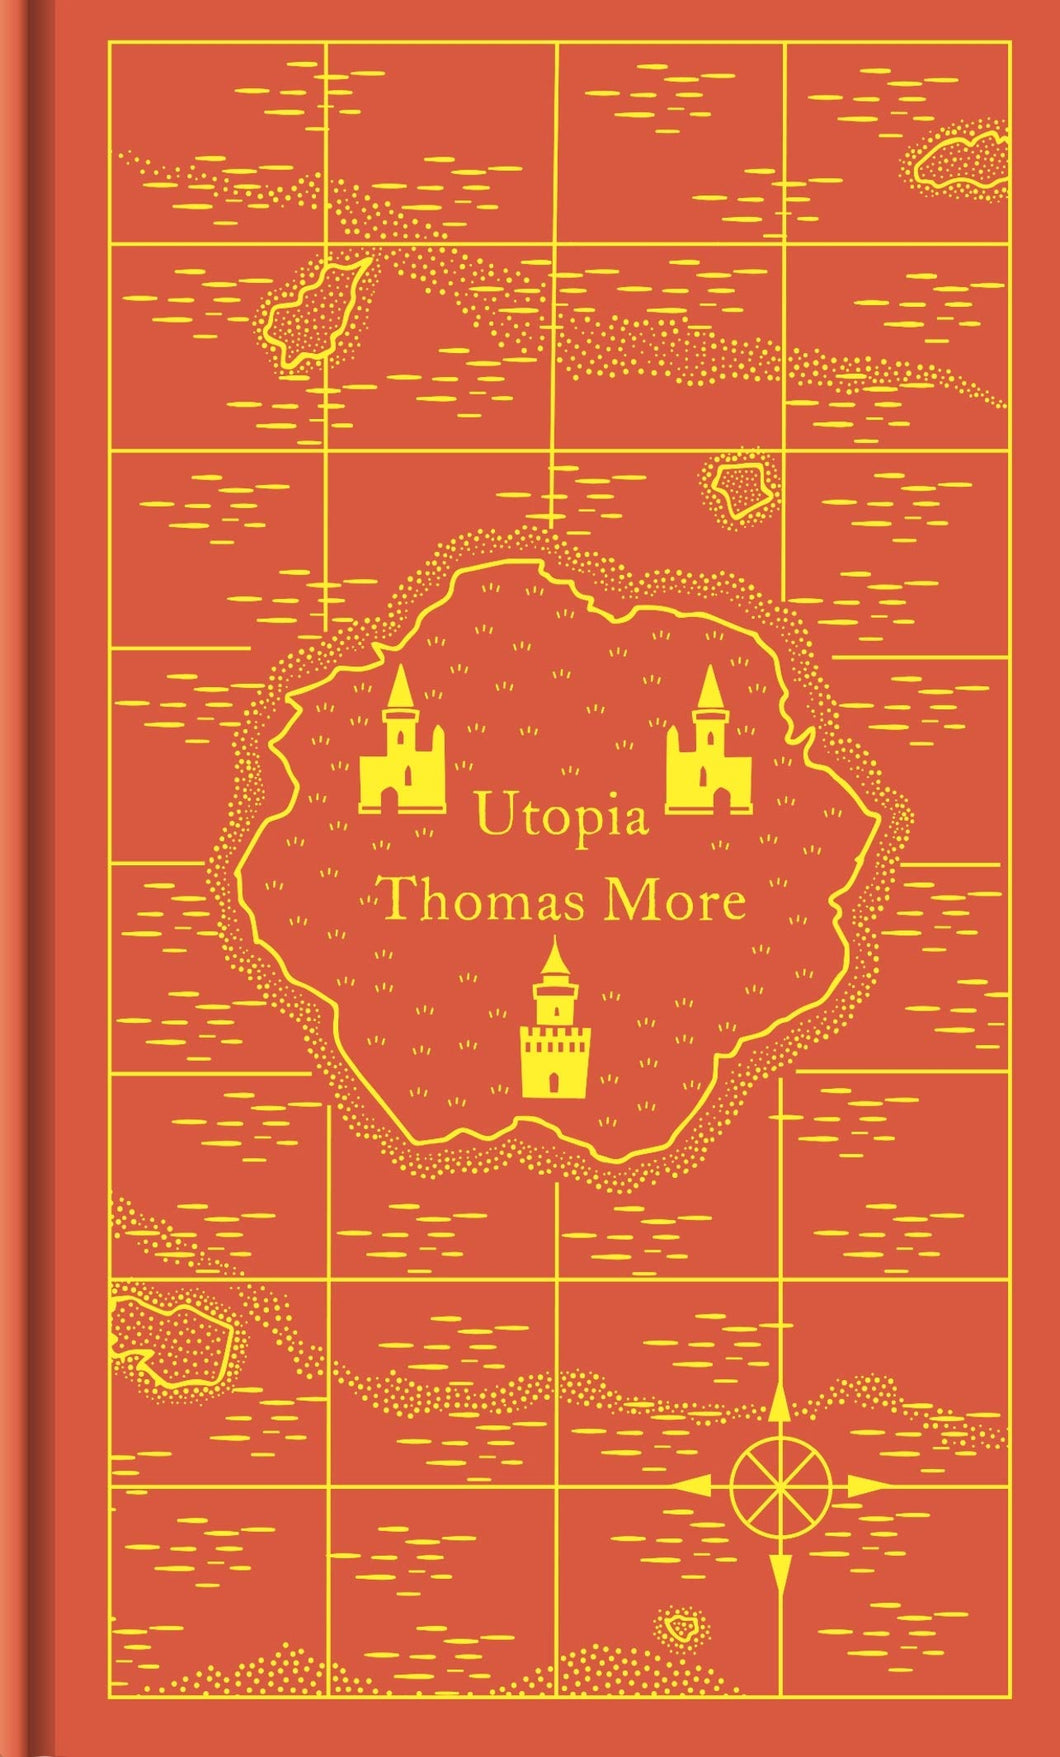 Utopia / Thomas More